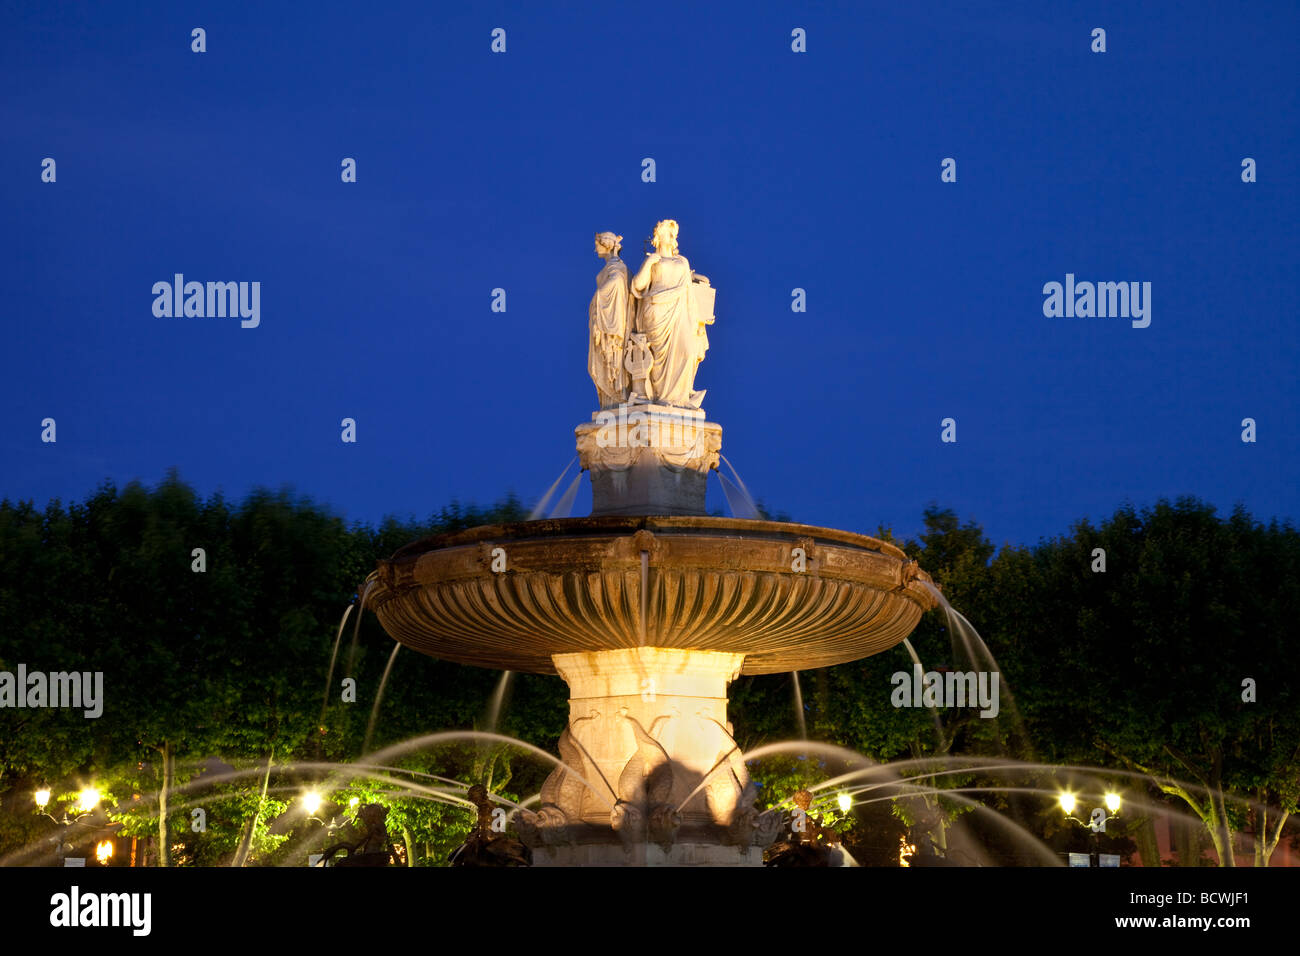 La Rotonde Fountain in Aix en-Provence, France - Stock Image